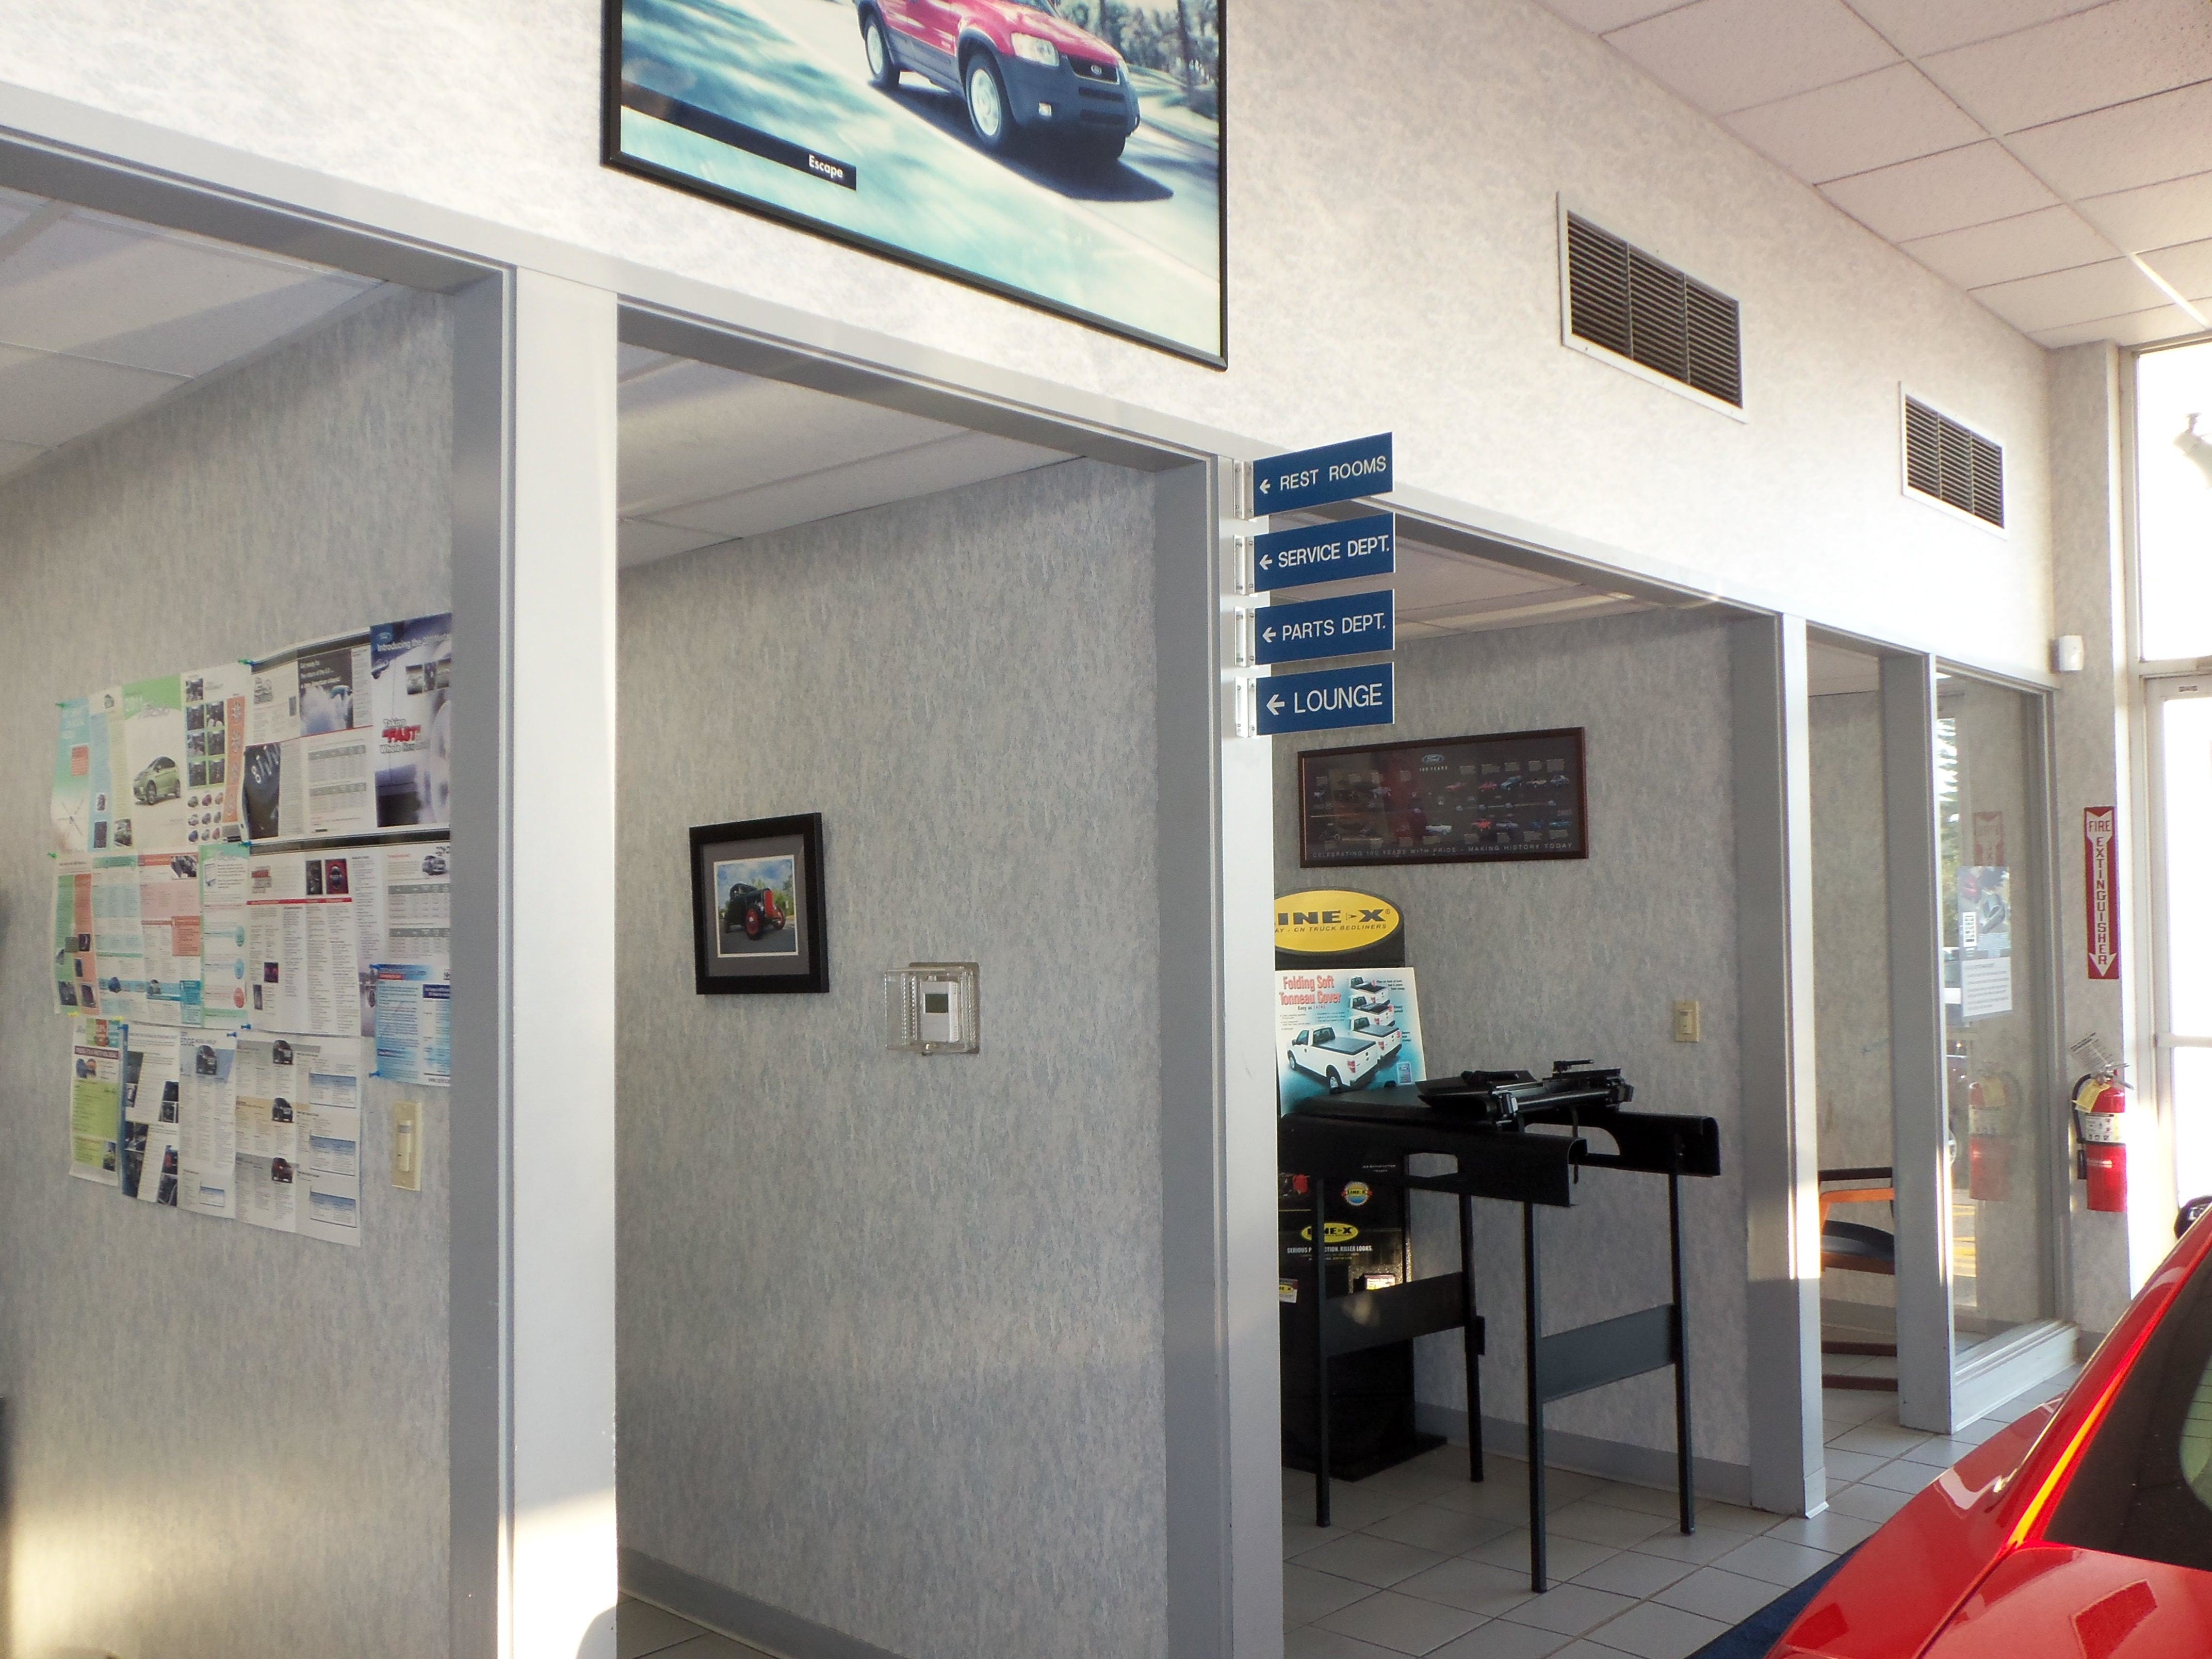 tom wood ford in indianapolis in 46240. Cars Review. Best American Auto & Cars Review